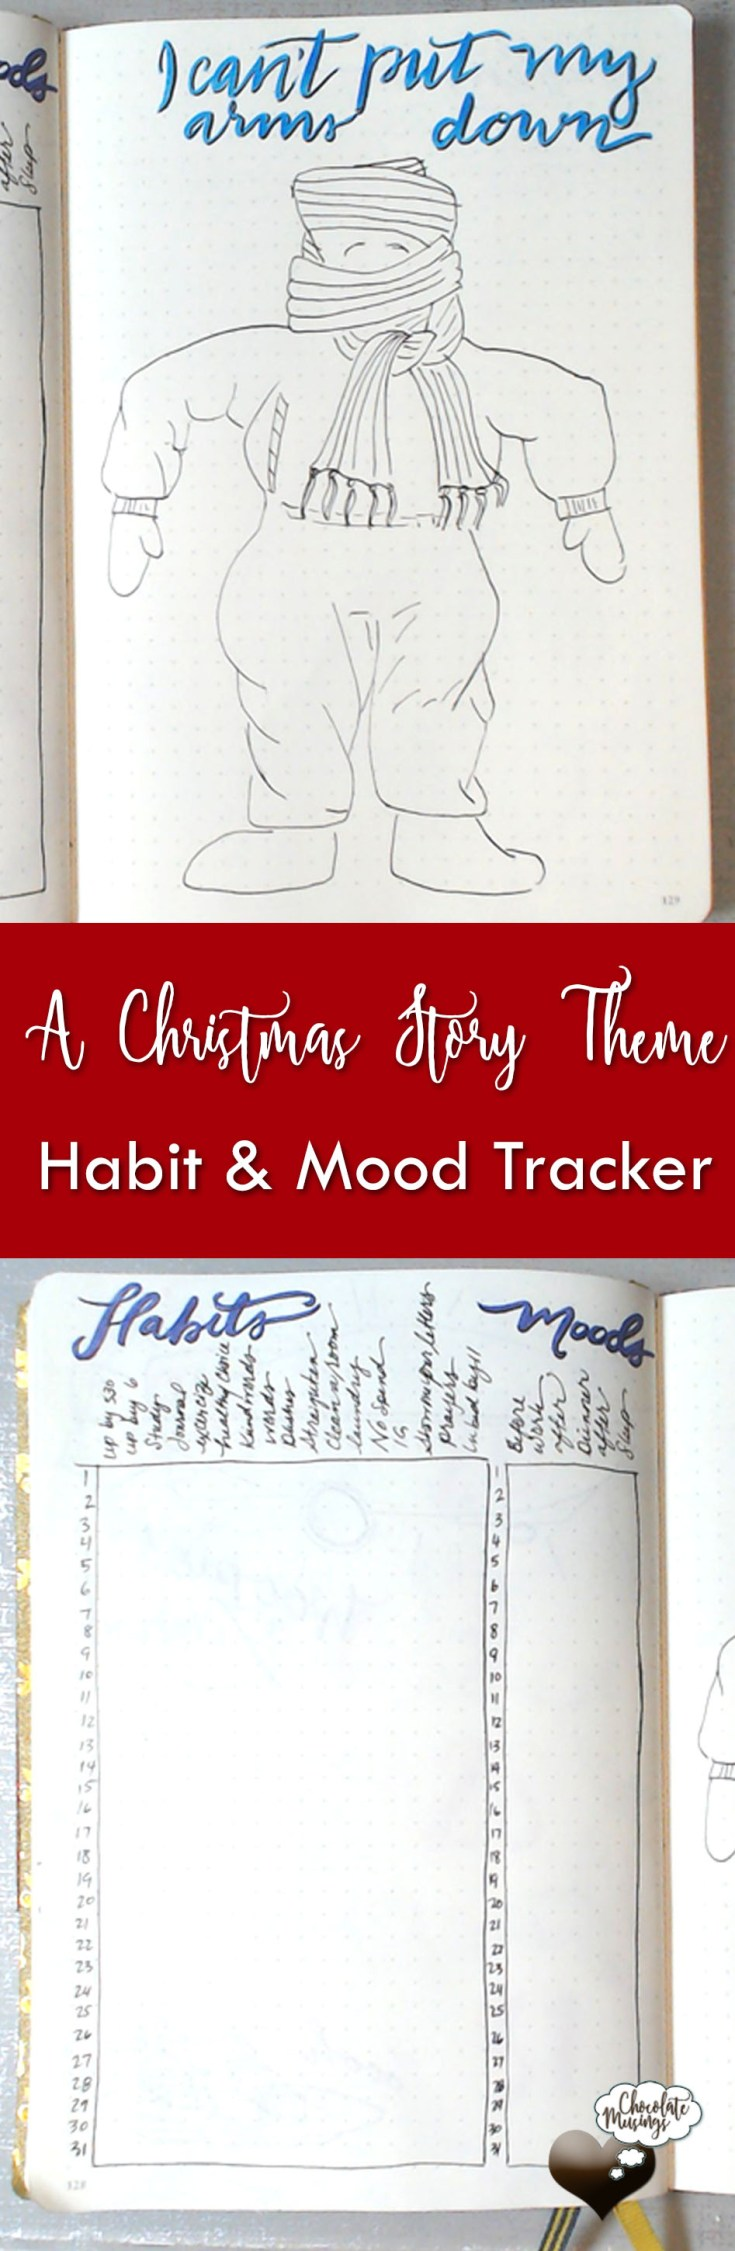 """December Habit & Mood Tracker goes perfect with A Christmas Story """"I can't put my arms down"""" quote - Vertical layout"""